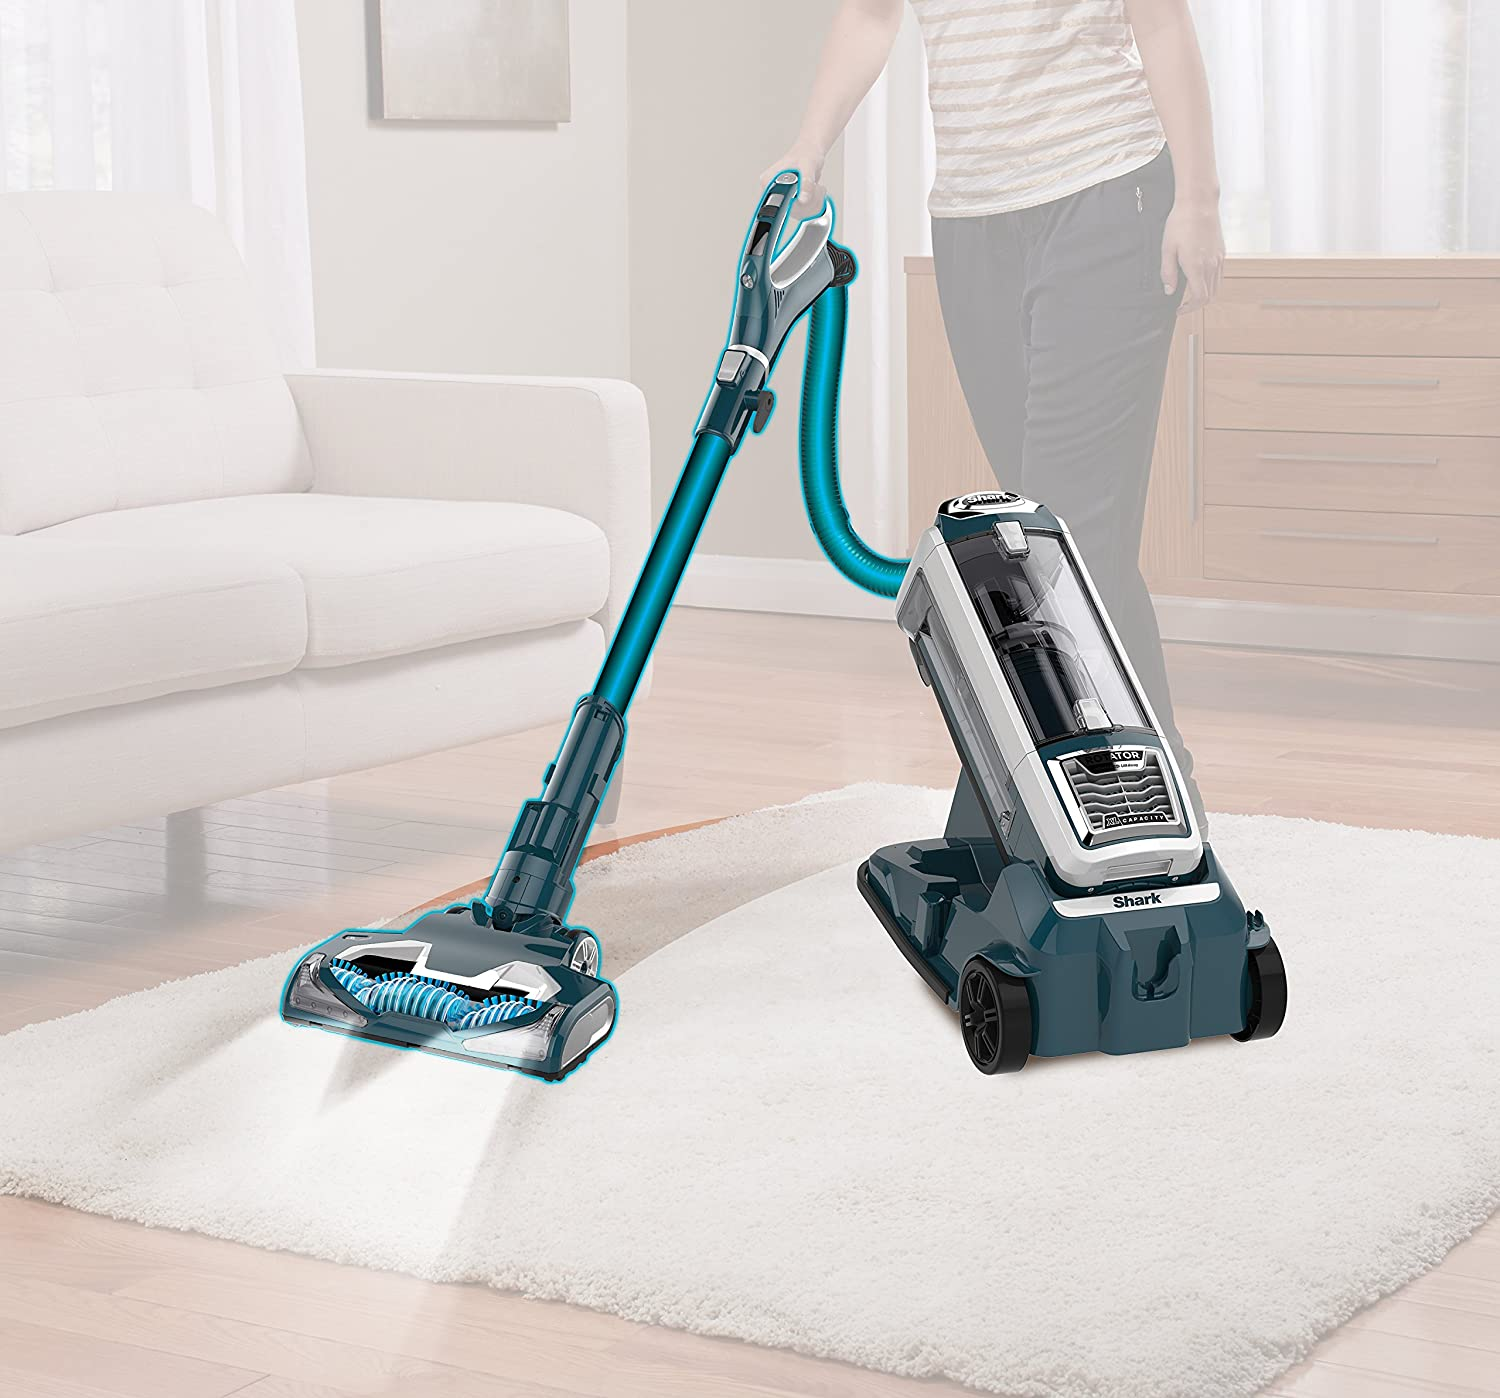 Top 20 Shark Vacuum Reviews 2018 Choose The Best Vacuum